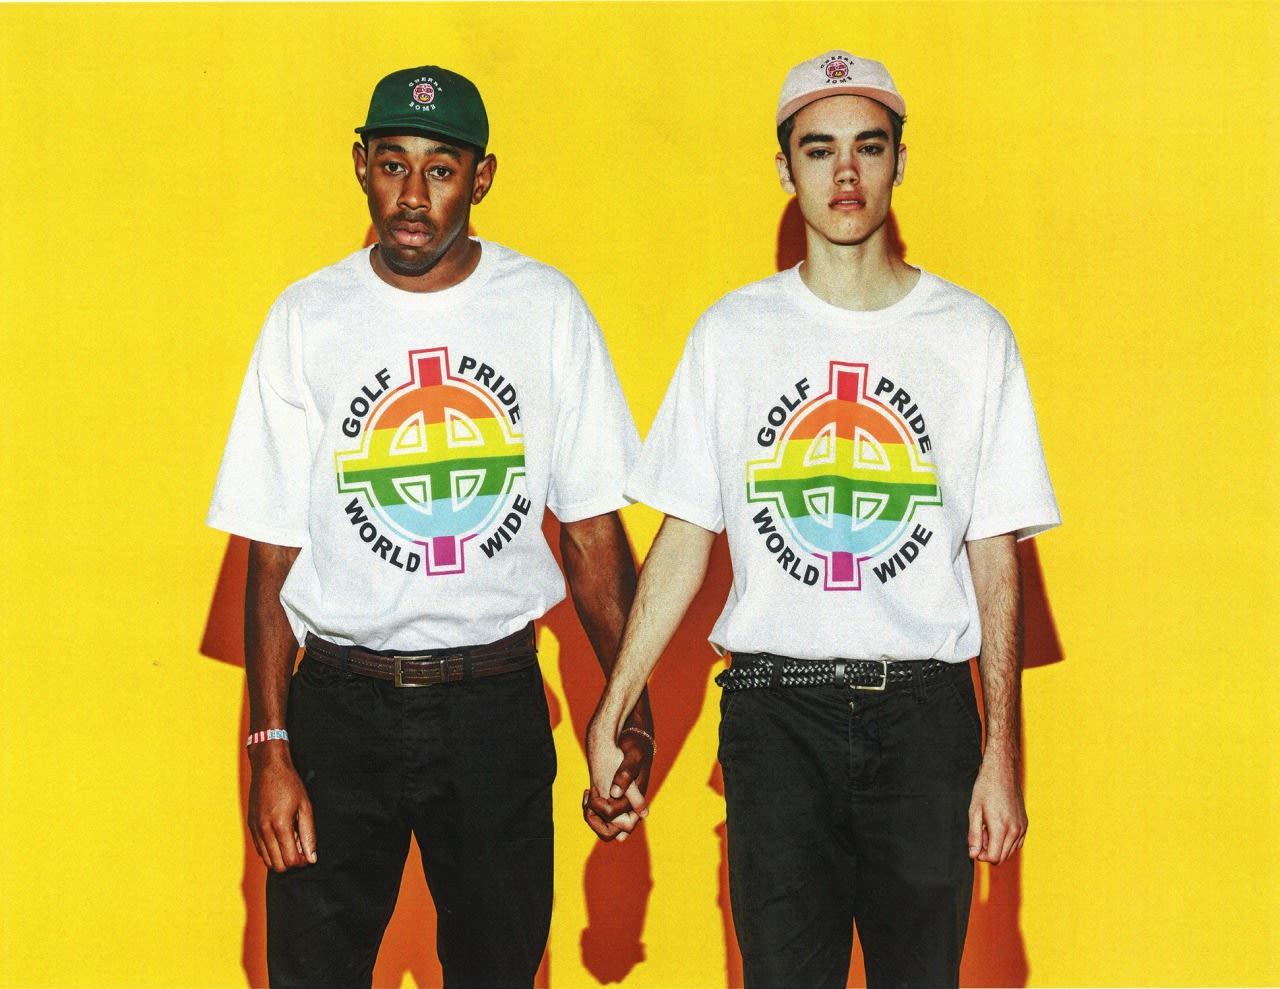 Golf Pride World Wide Tee From Golf Wang Spring Summer 2015 Lookbook